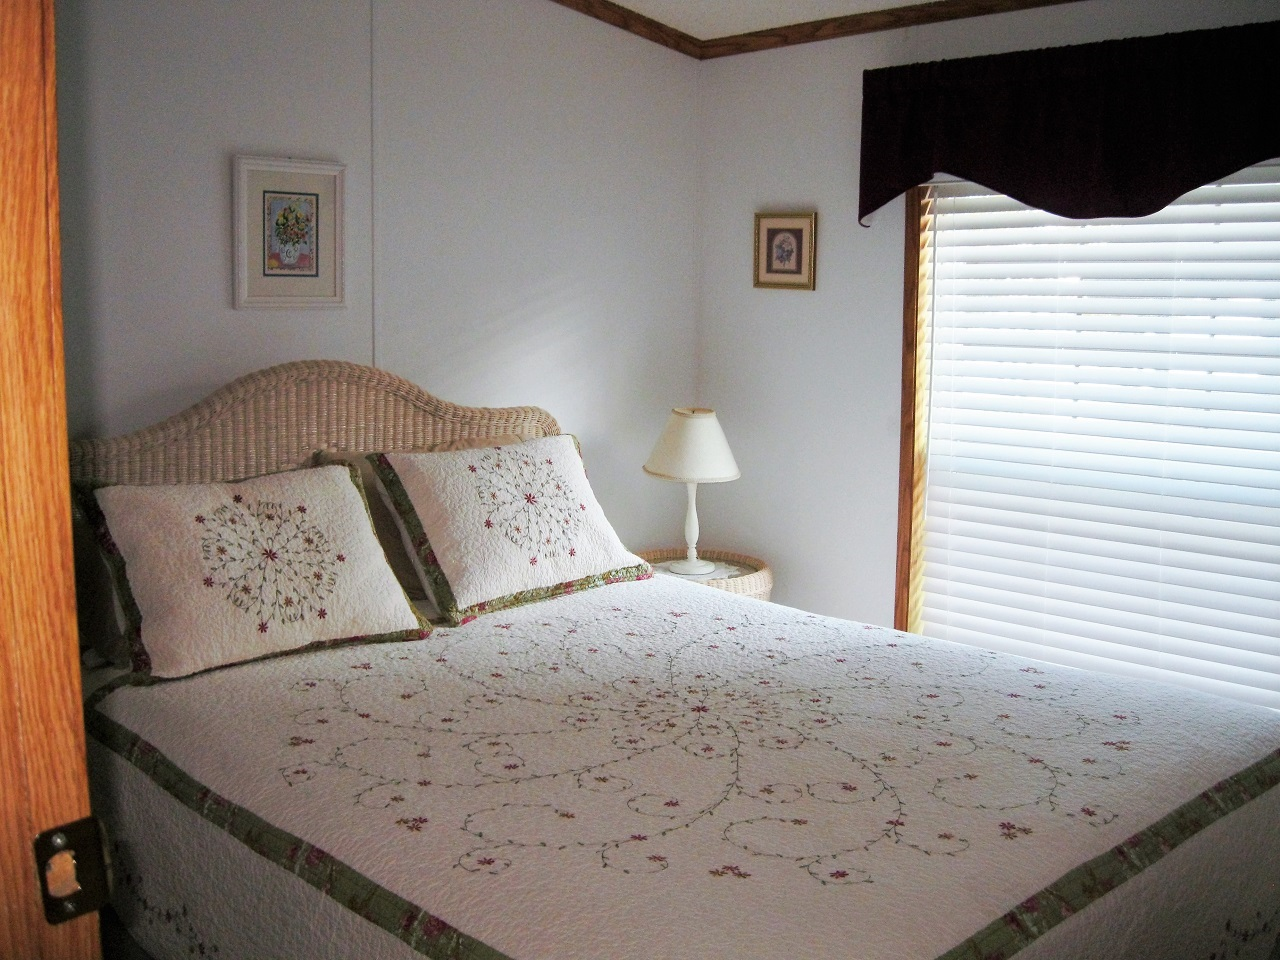 10 Seminole queen bedroom